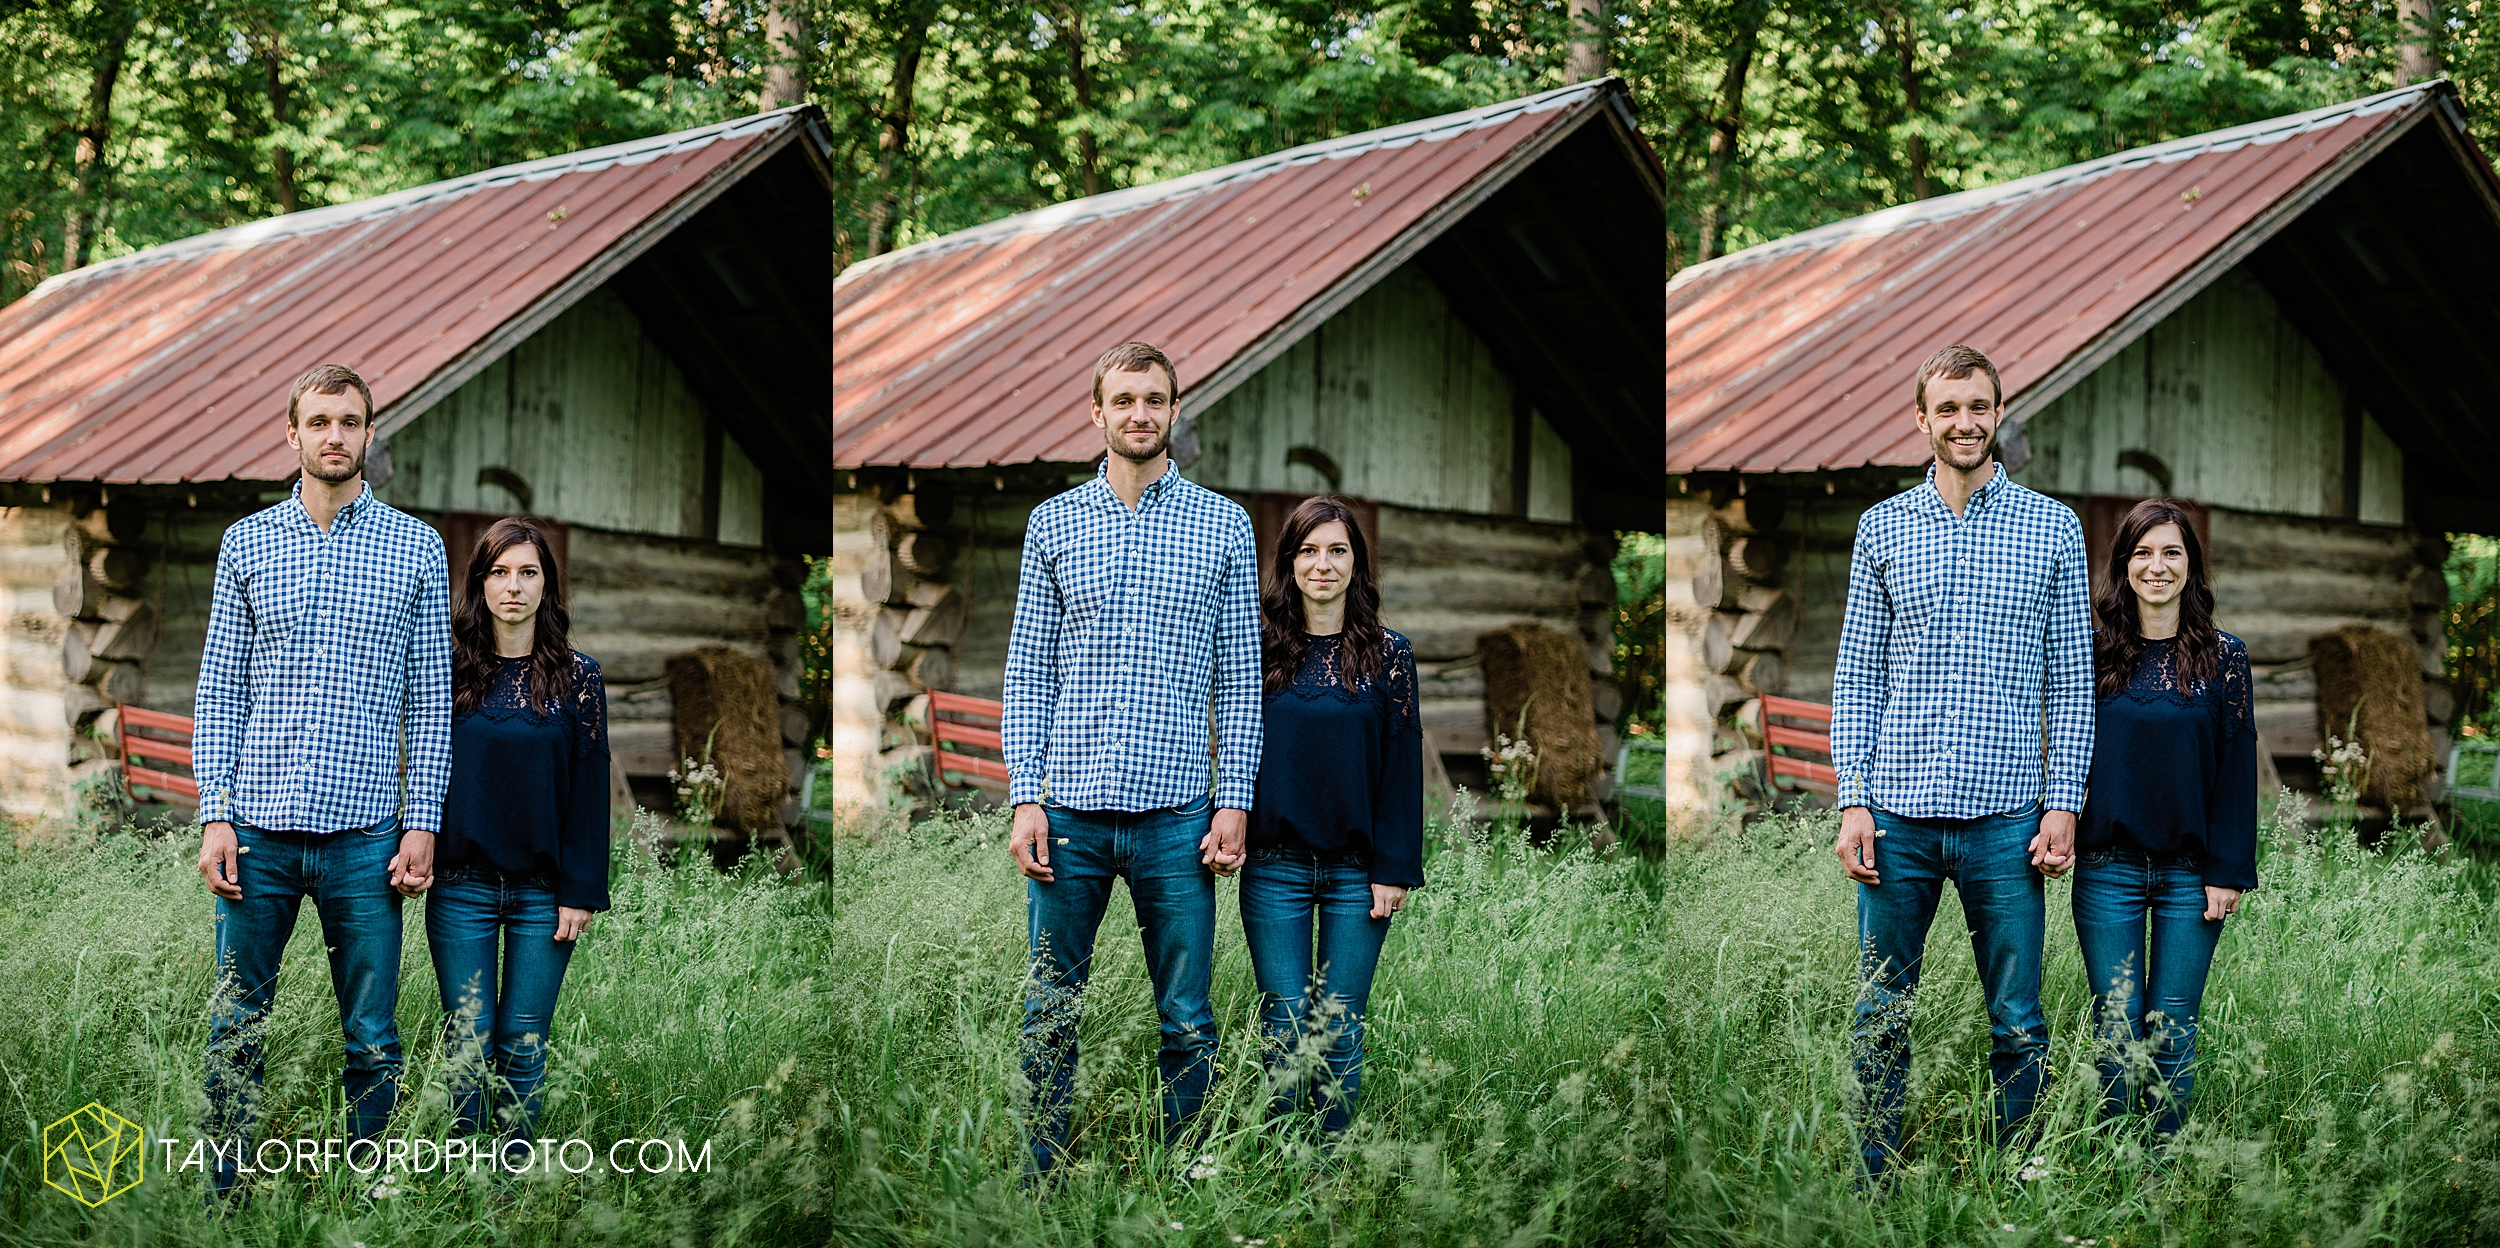 celina-mercer-county-ohio-farm-woods-engagement-photographer-photography-taylor-ford-hirschy-photographer_2993.jpg